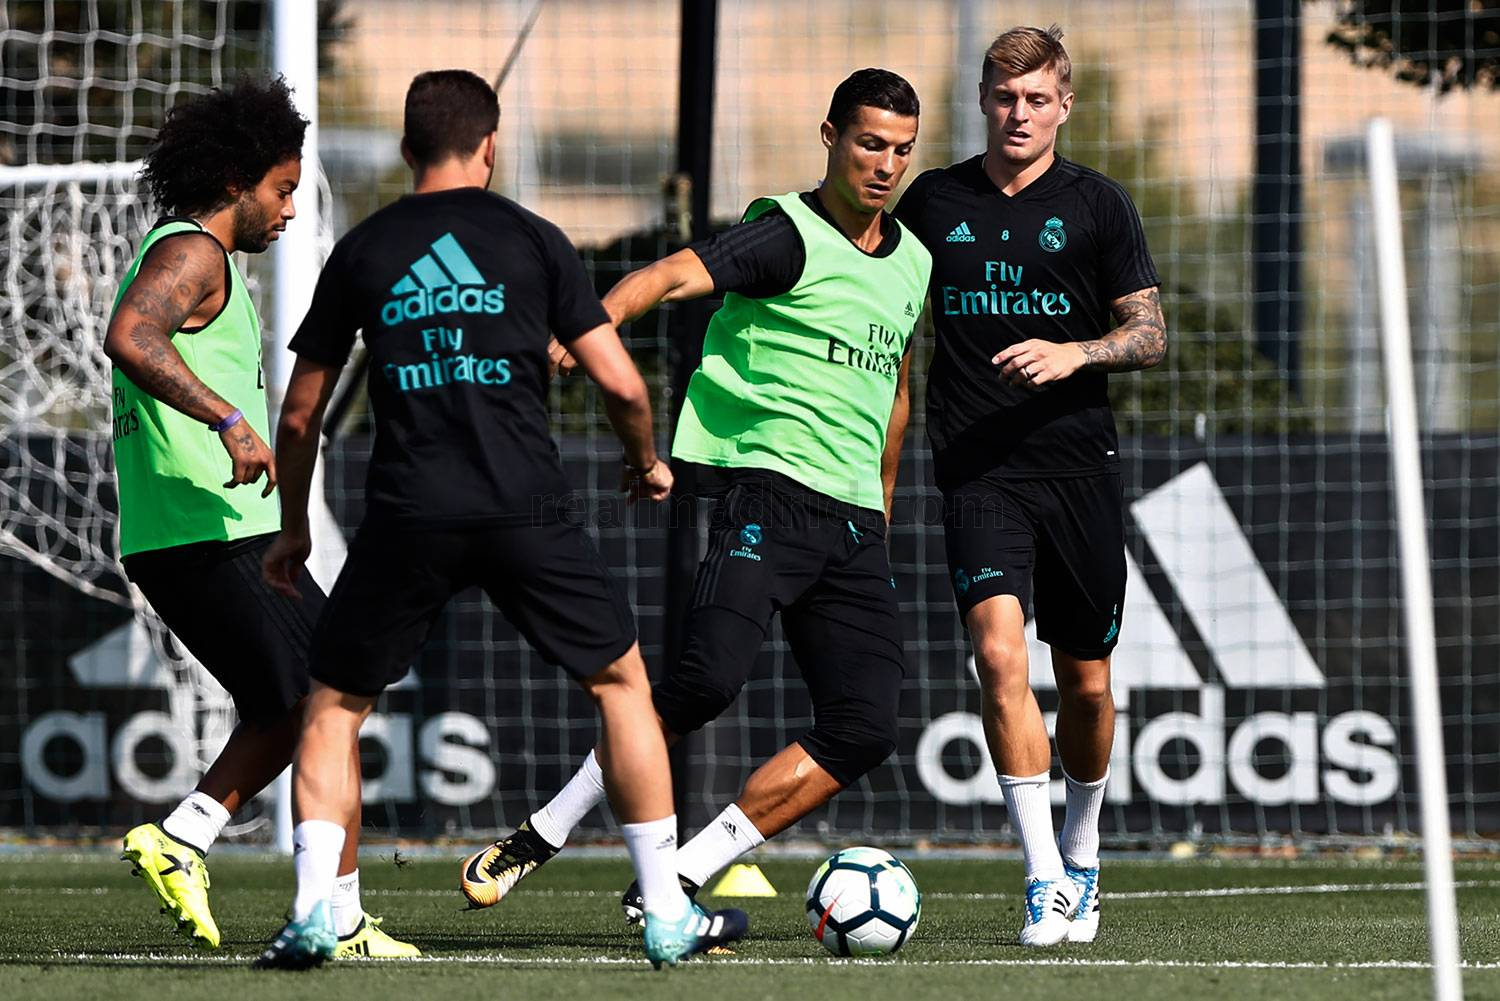 Real Madrid - Entrenamiento del Real Madrid - 07-09-2017